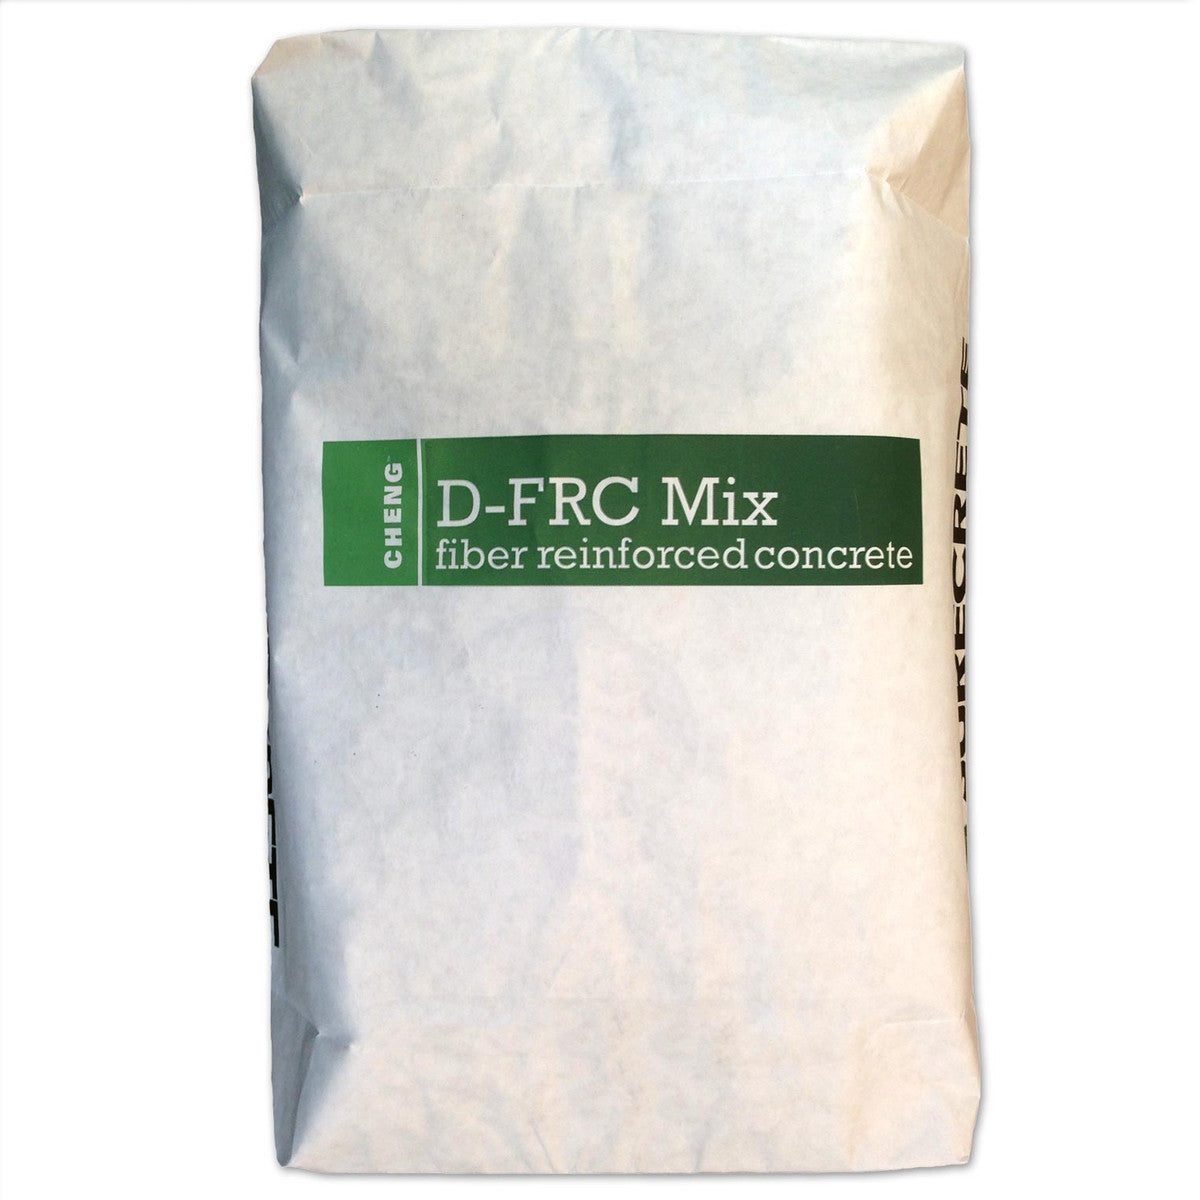 Surecrete D-FRC Spray Mix - Gray Concrete